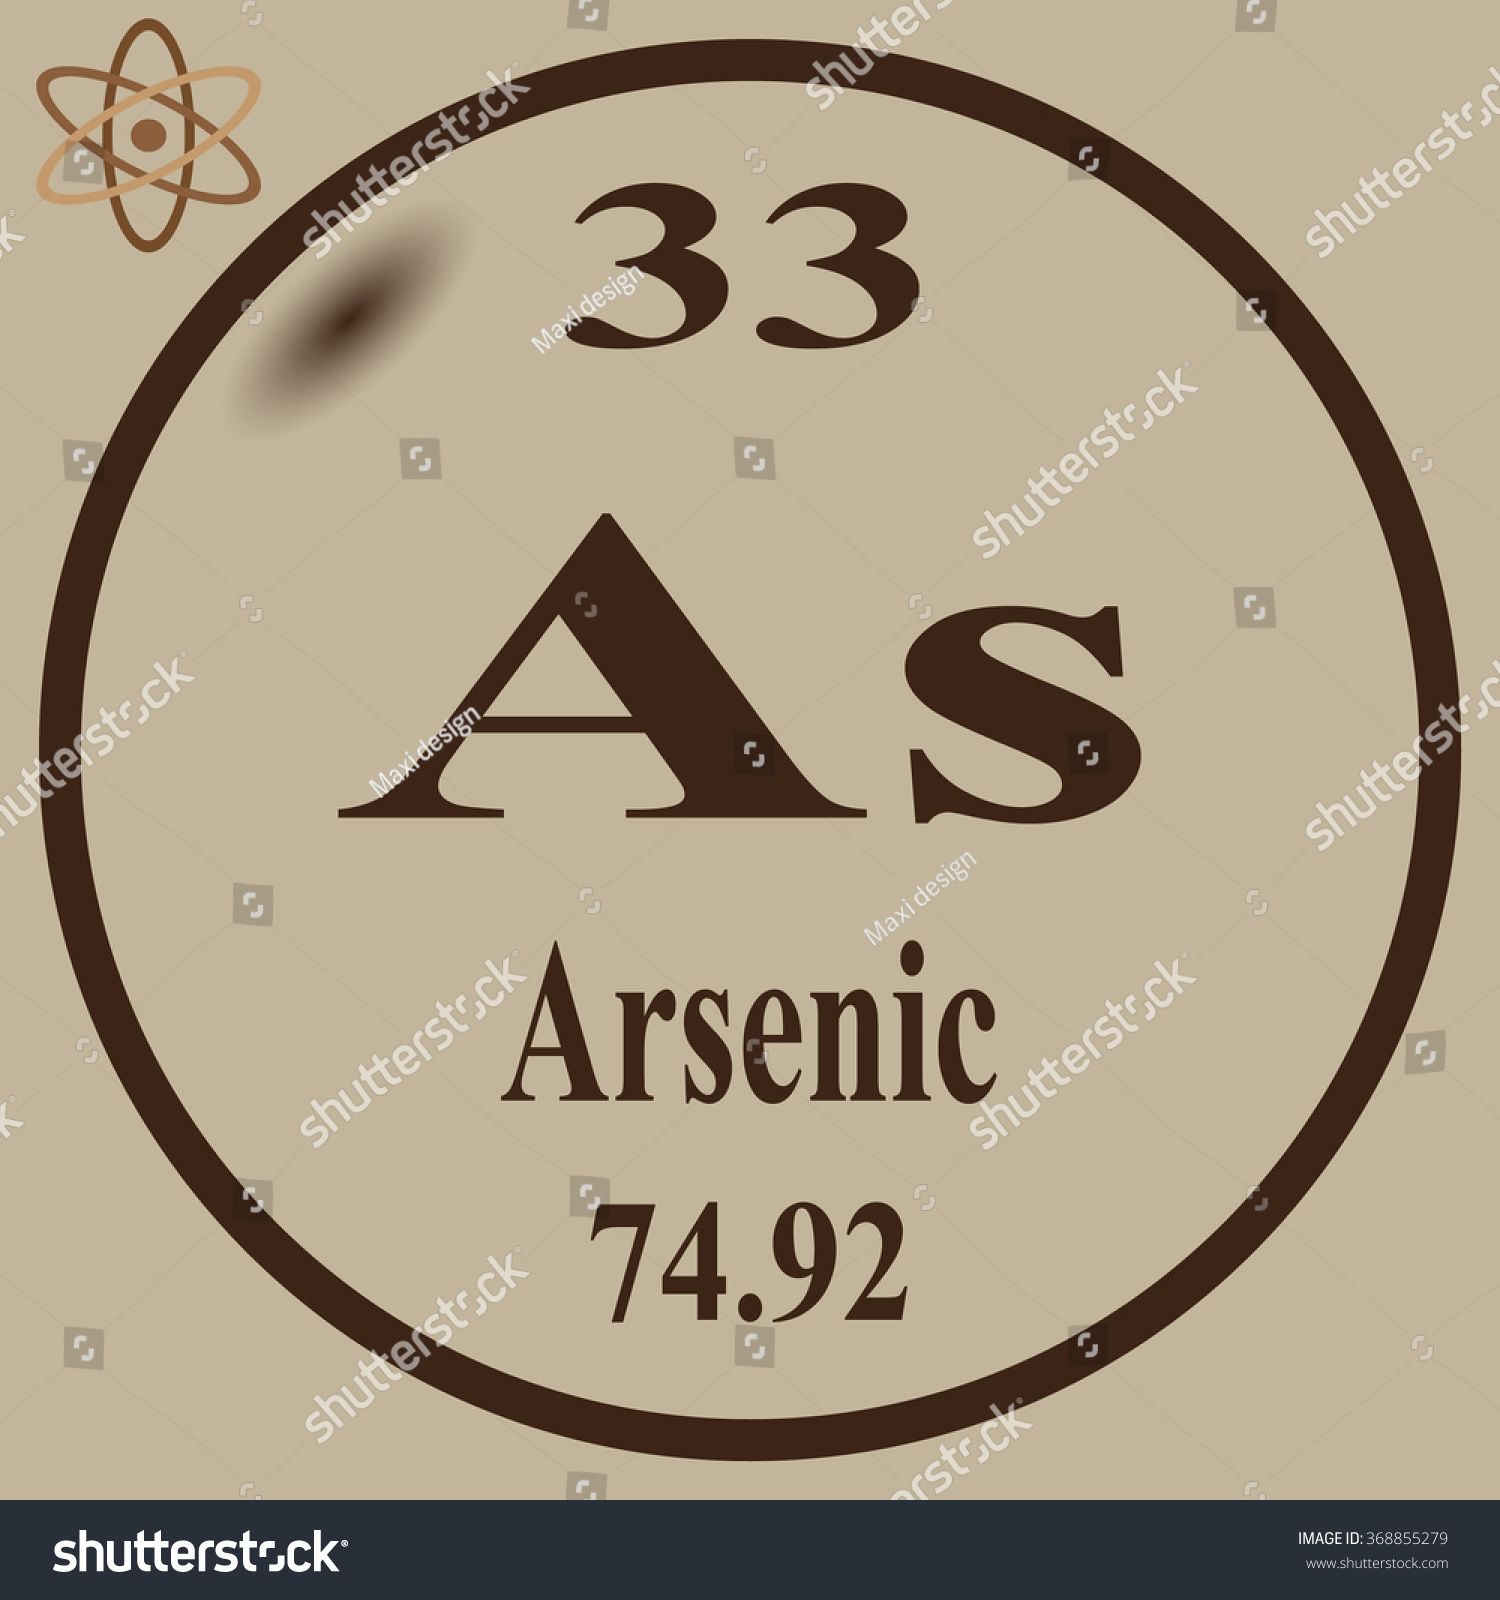 Periodic table elements arsenic stock vector 368855279 shutterstock periodic table of elements arsenic biocorpaavc Image collections